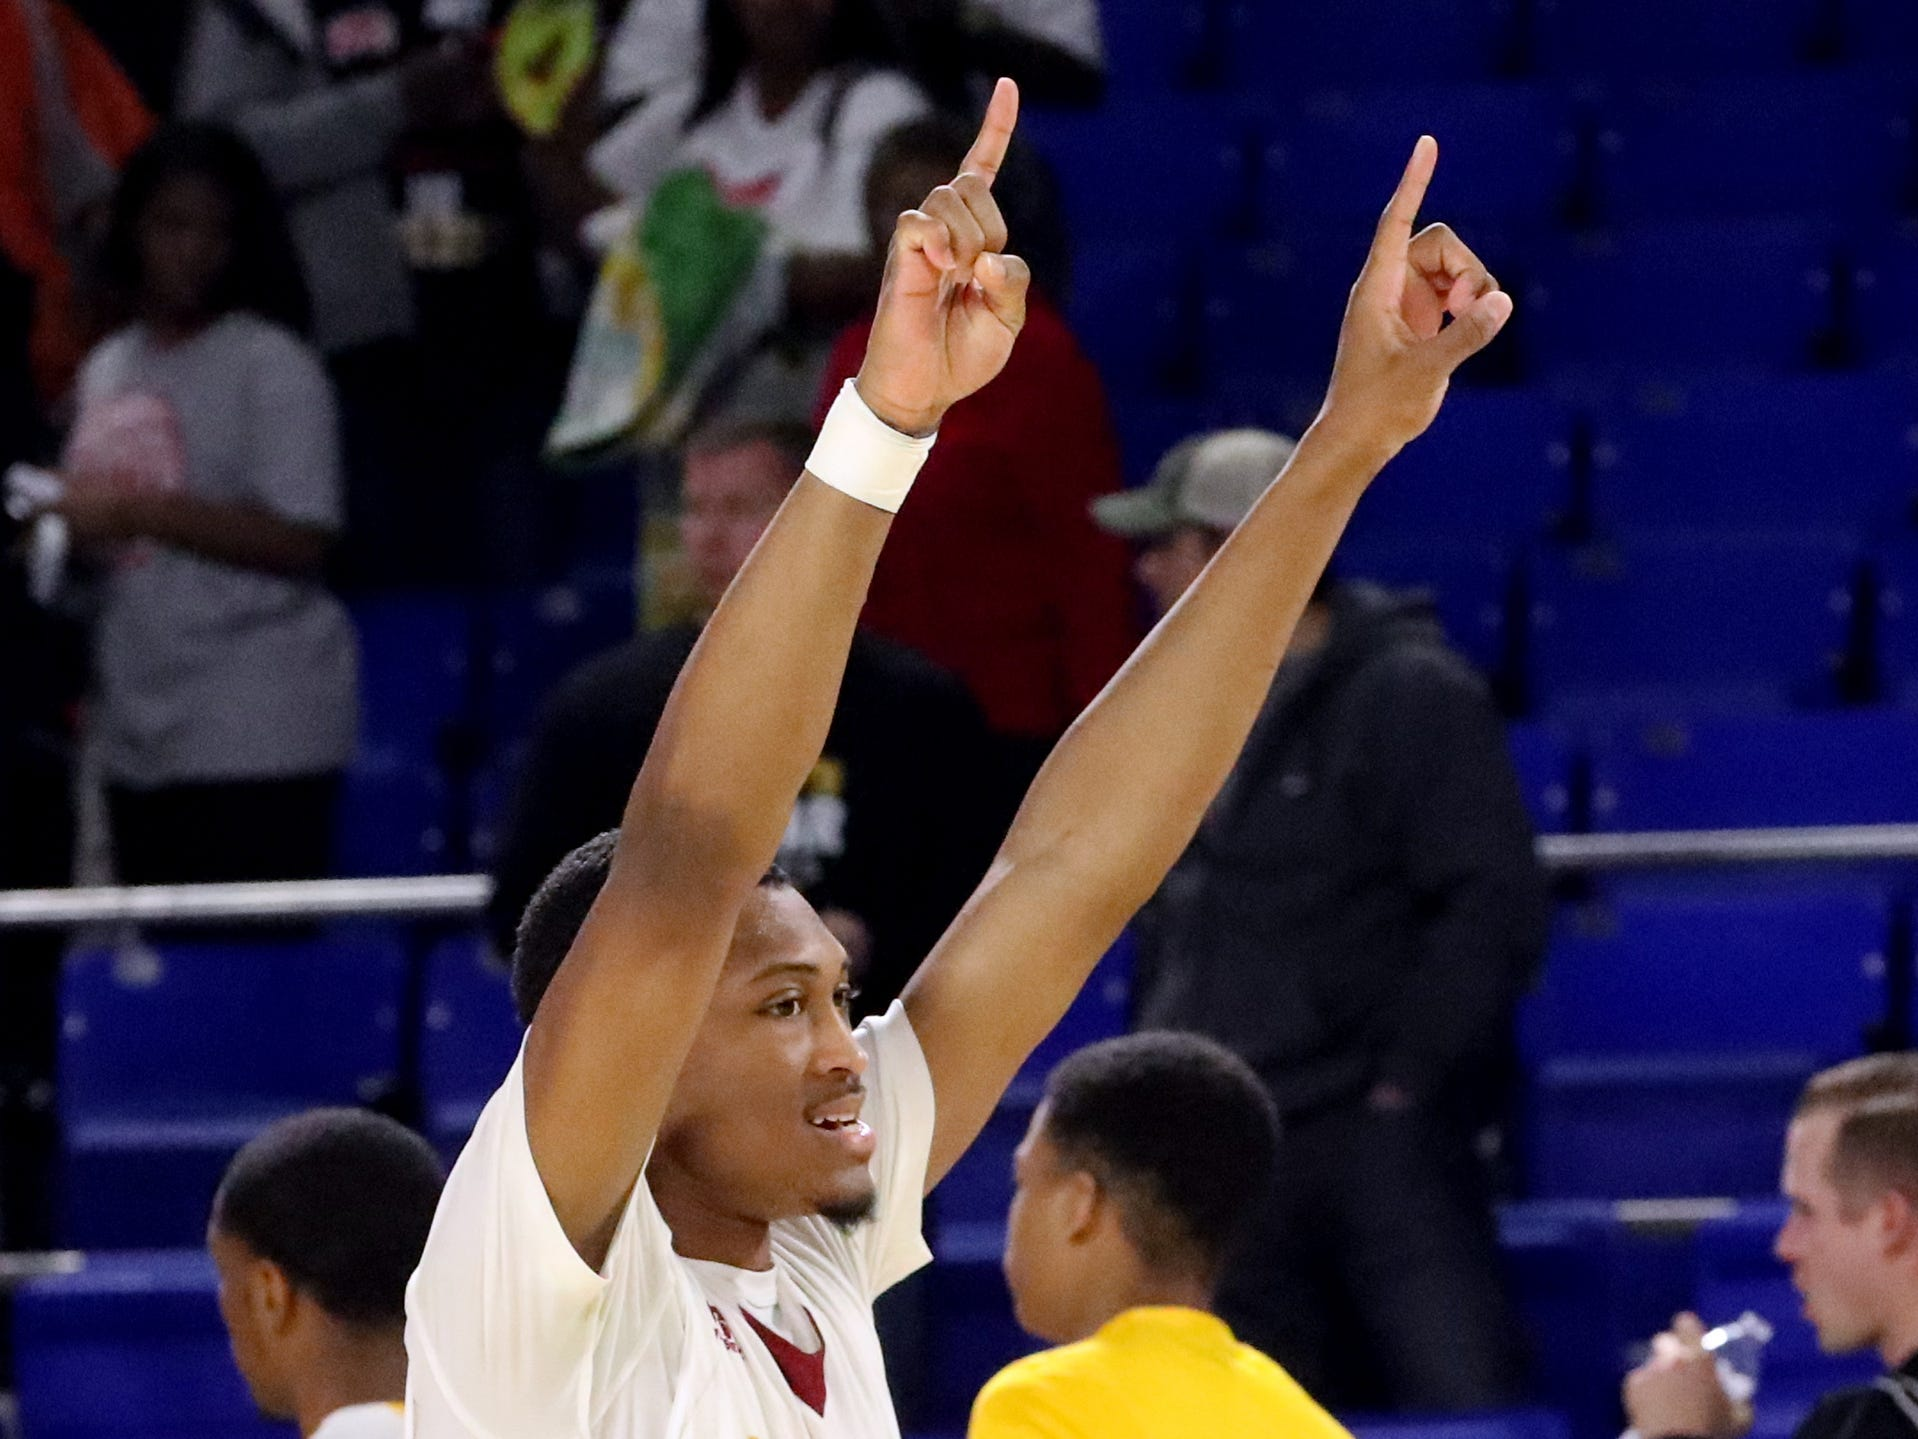 Humboldt's Anthony Jones (45) celebrates the 65-53 win over Fayetteville in the quarterfinal round of the TSSAA Class A Boys State Tournament, on Thursday, March 14, 2019, at Murphy Center in Murfreesboro, Tenn.